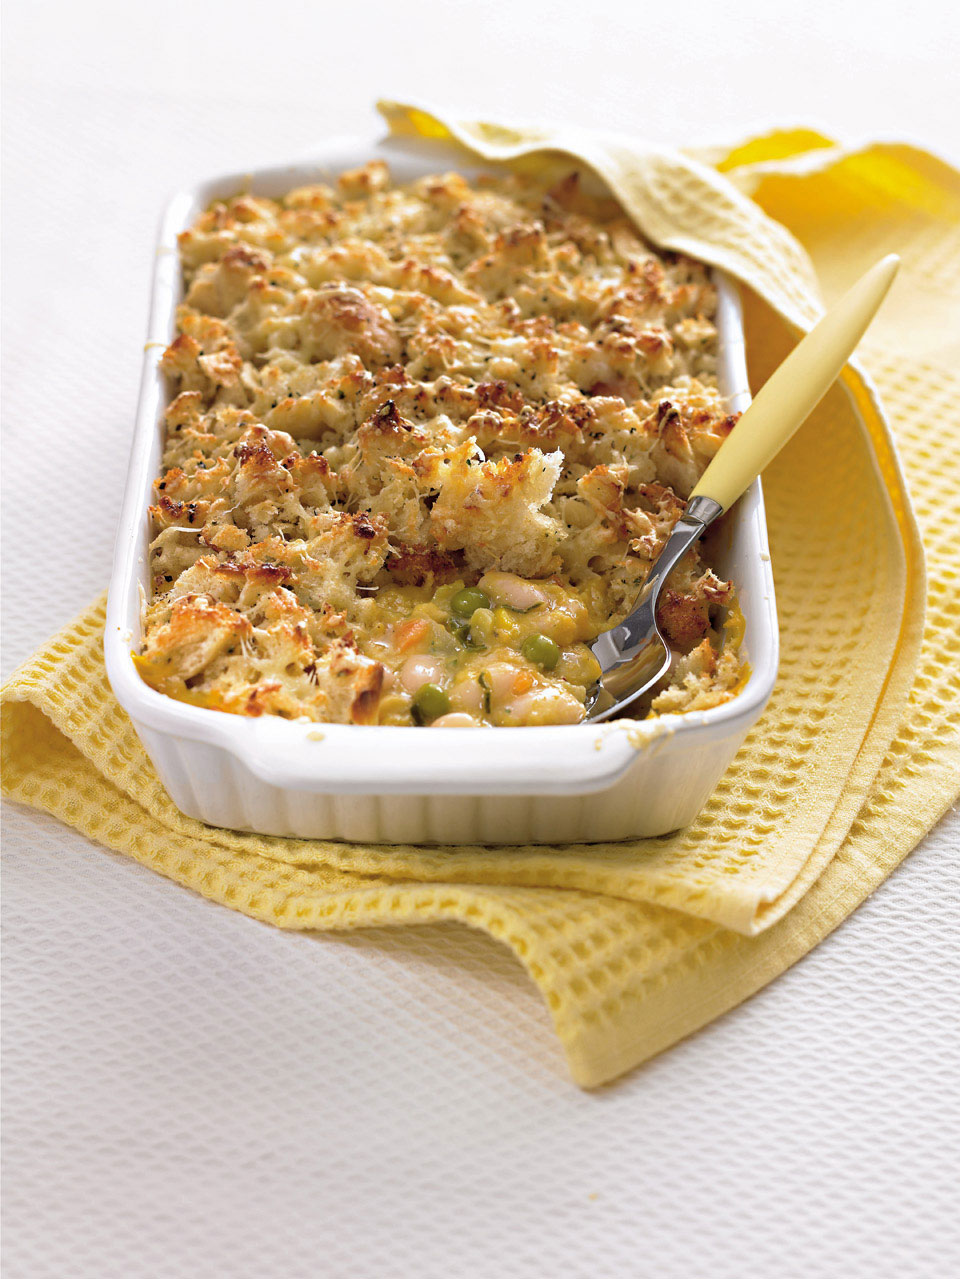 Vegetable bake with garlic bread topping - delicious. magazine